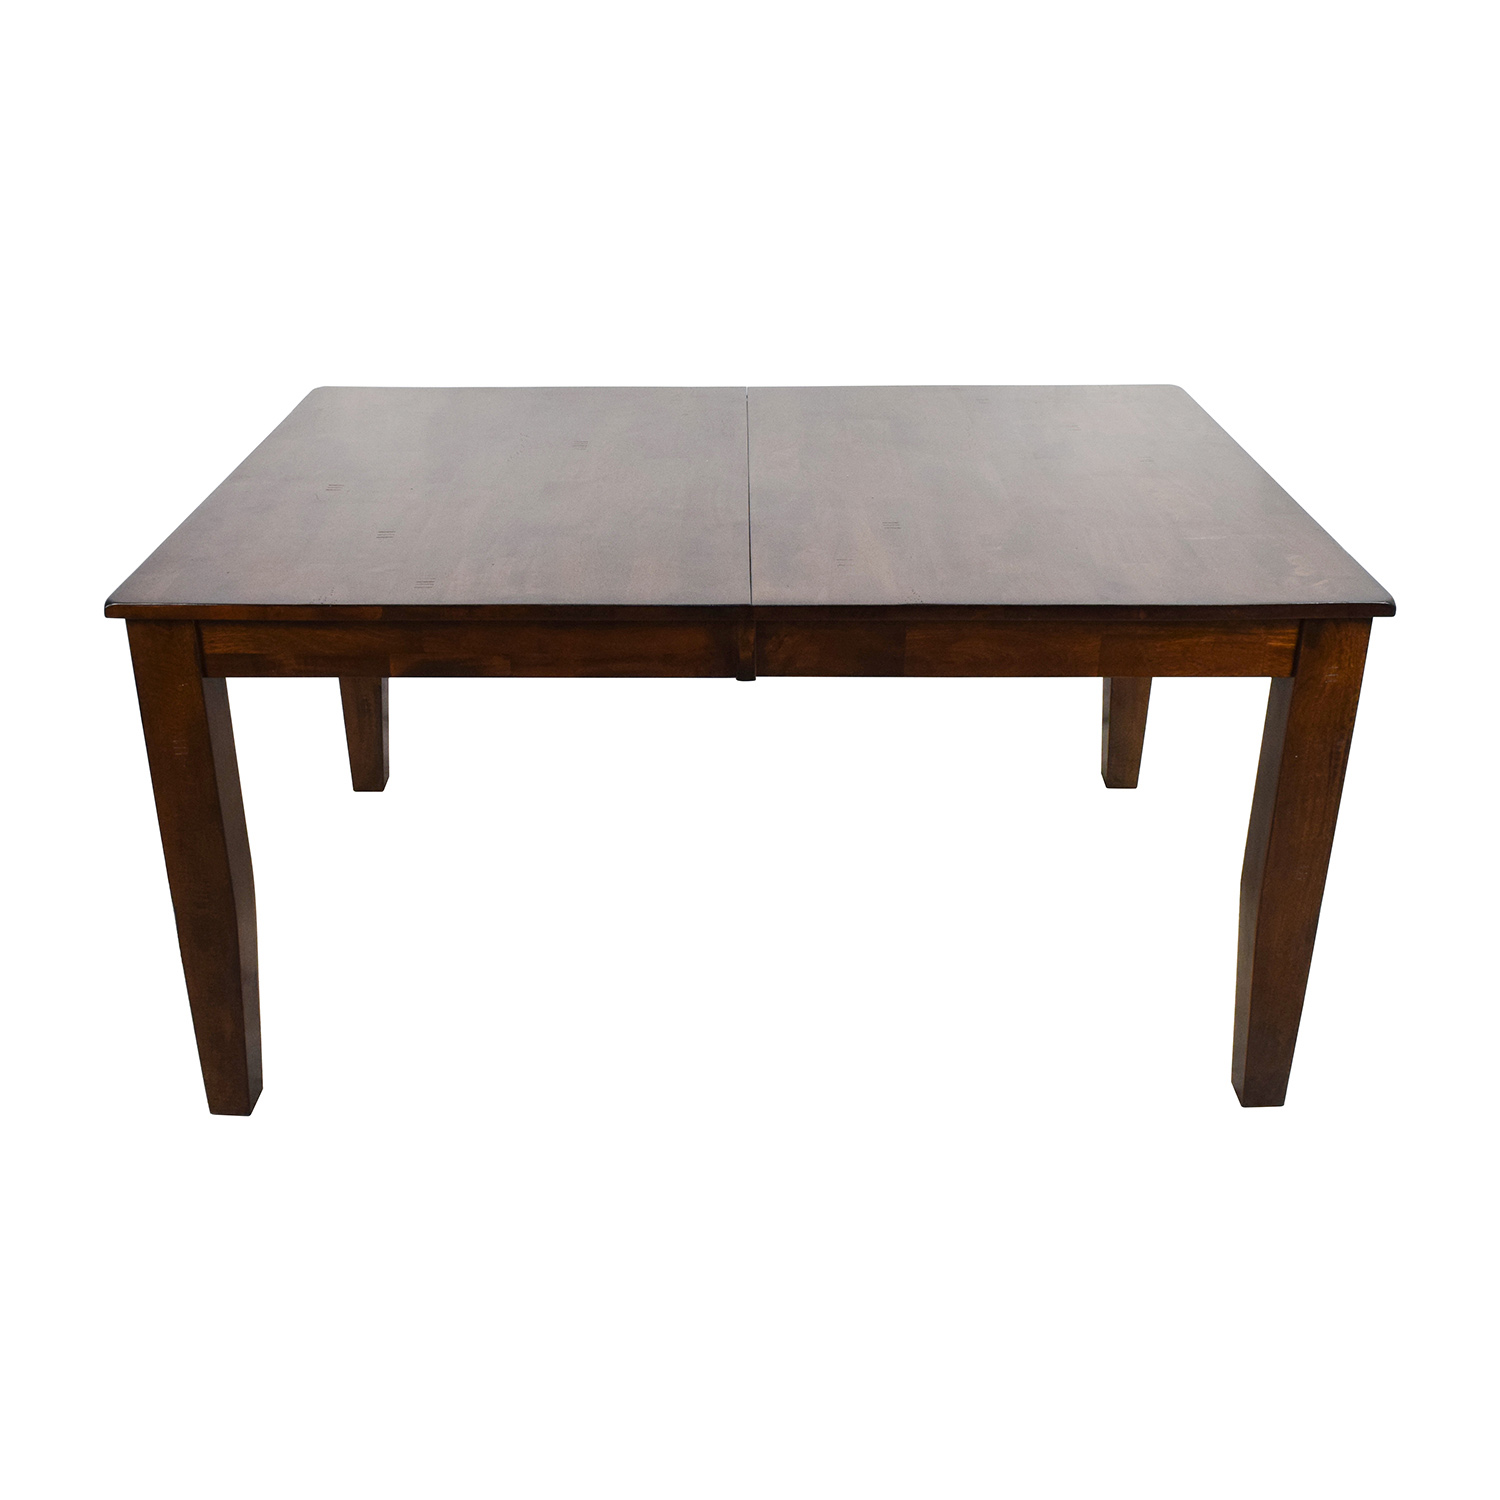 Raymour & Flanigan Raymour & Flanigan Kona Dining Table price